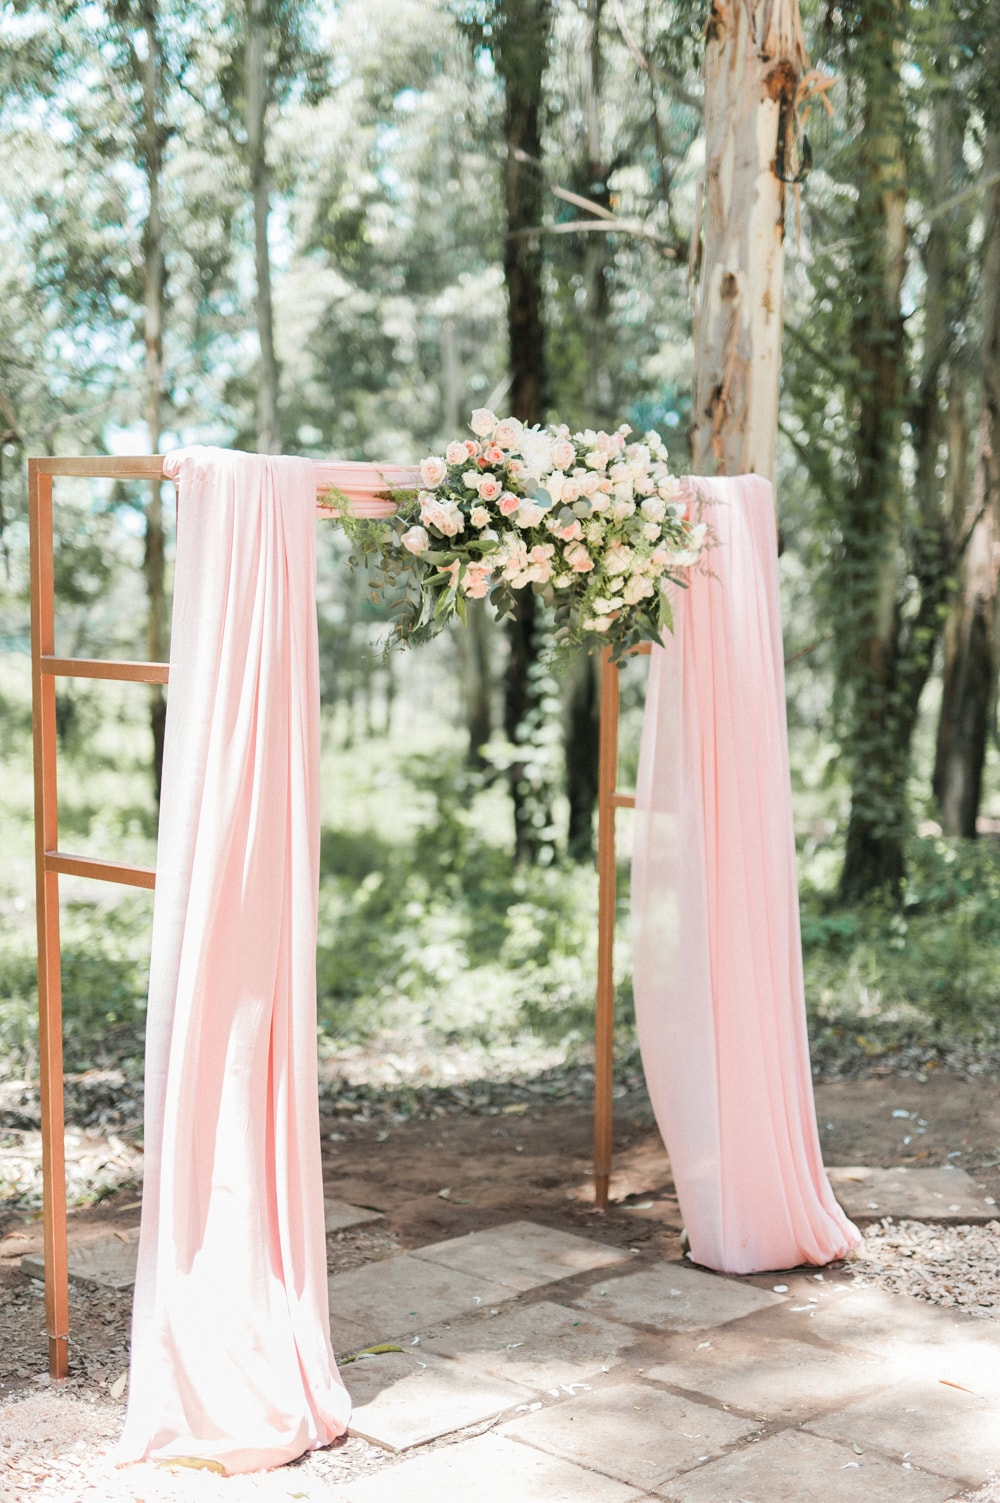 Draped Blush Floral Arch | Image: Bright Girl Photography